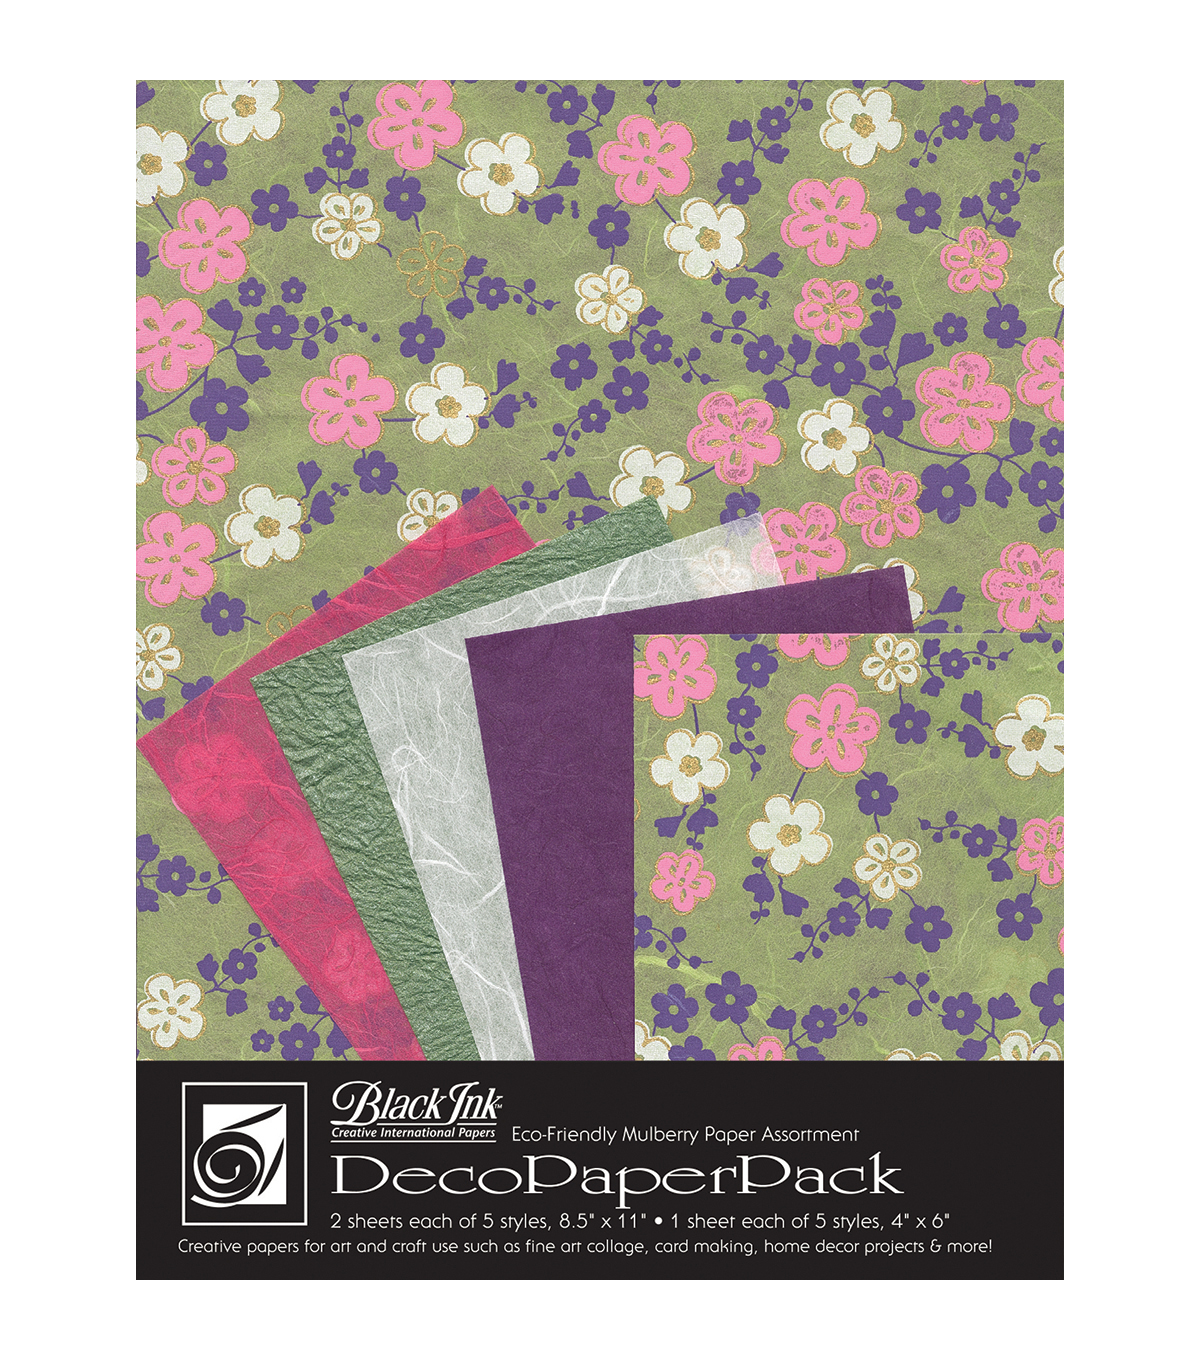 Black Ink Sakura Deco Paper Pack